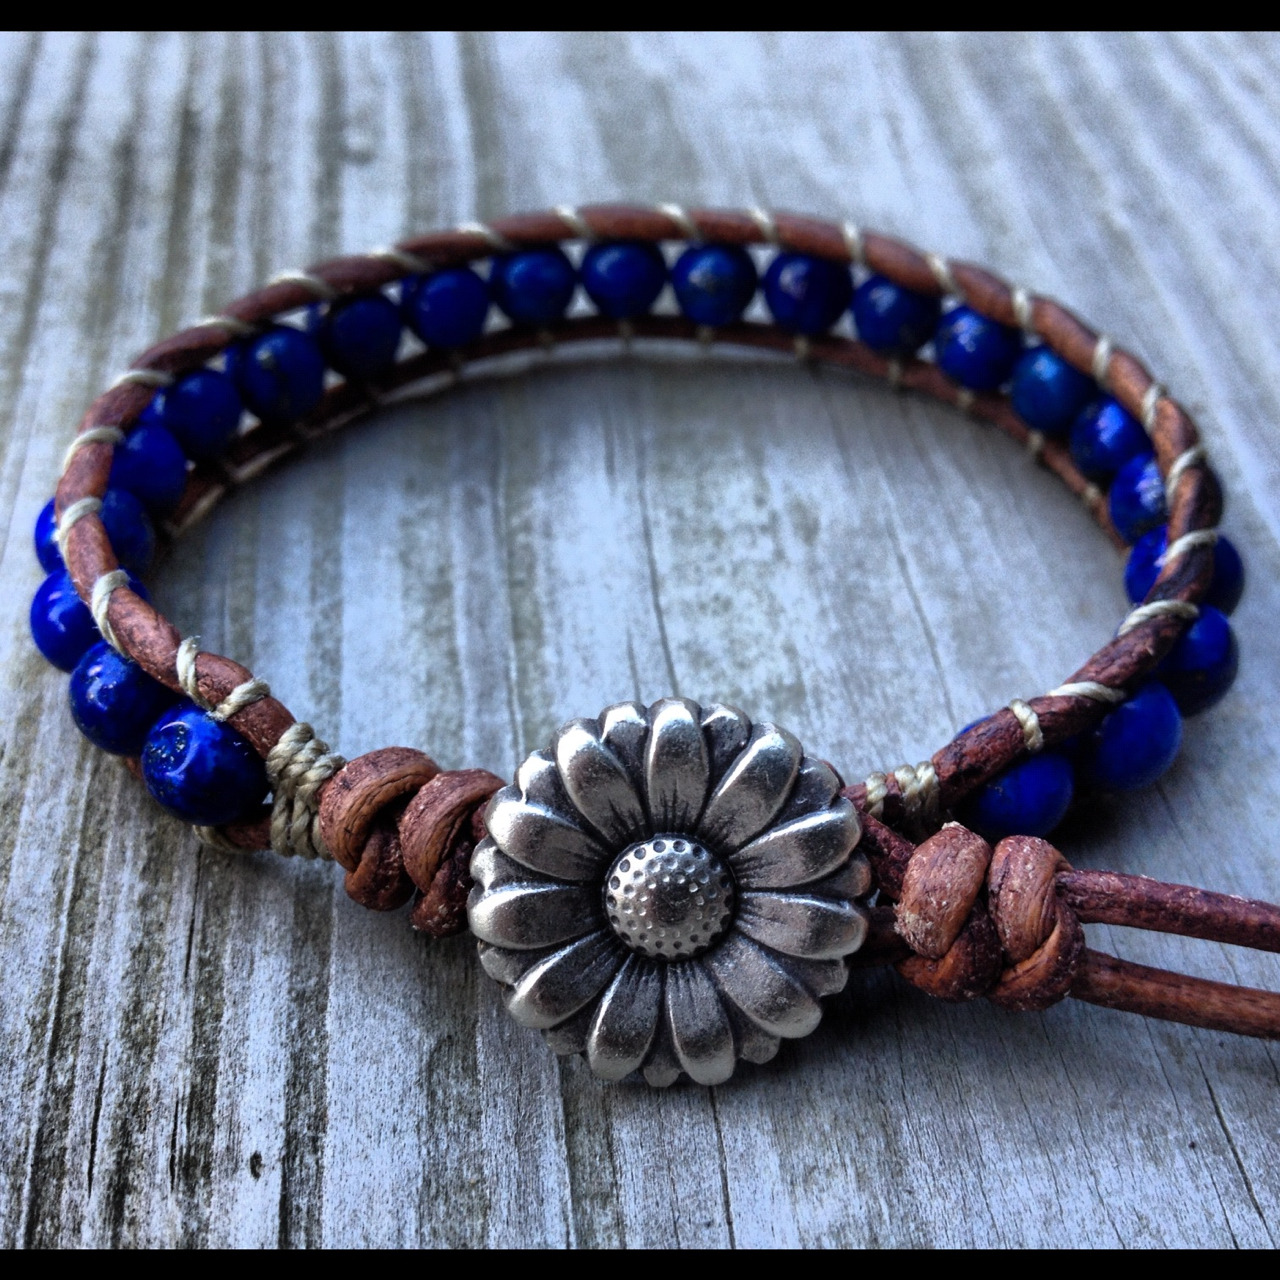 Lapis Lazuli leather bracelet at www.designbyance.etsy.com